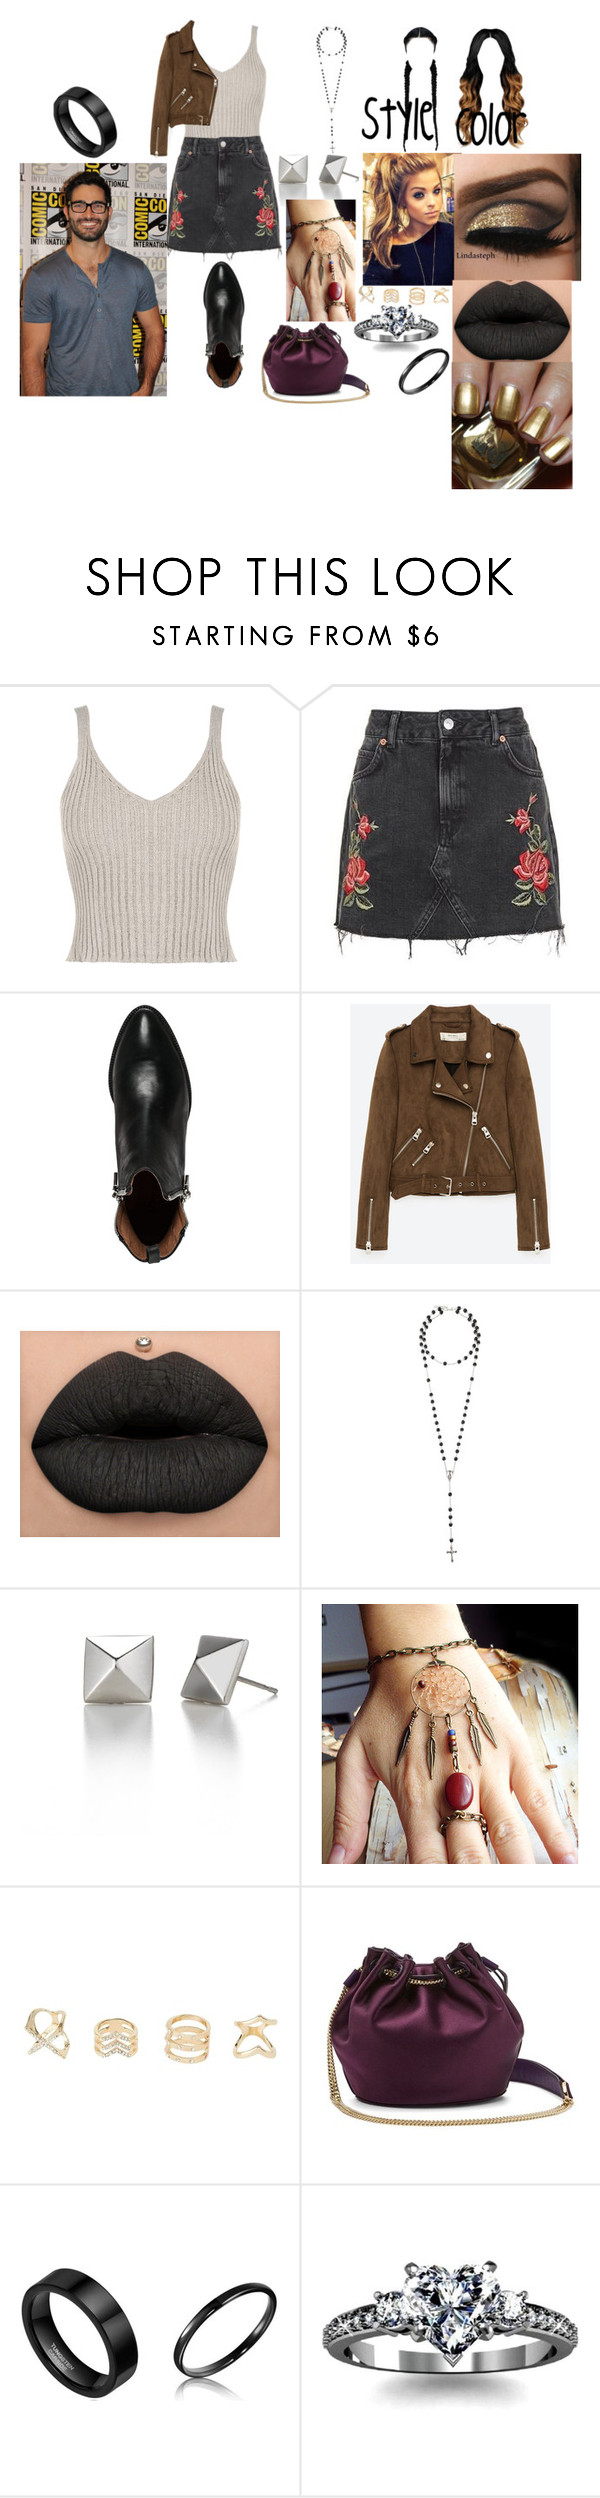 """""""Heart Monitor (Tyler Hoechlin Love Story)"""" by anaeve ❤ liked on Polyvore featuring WearAll, Topshop, Jeffrey Campbell, Freebird, Estée Lauder, Givenchy, Charlotte Russe, Diane Von Furstenberg and Bourne"""